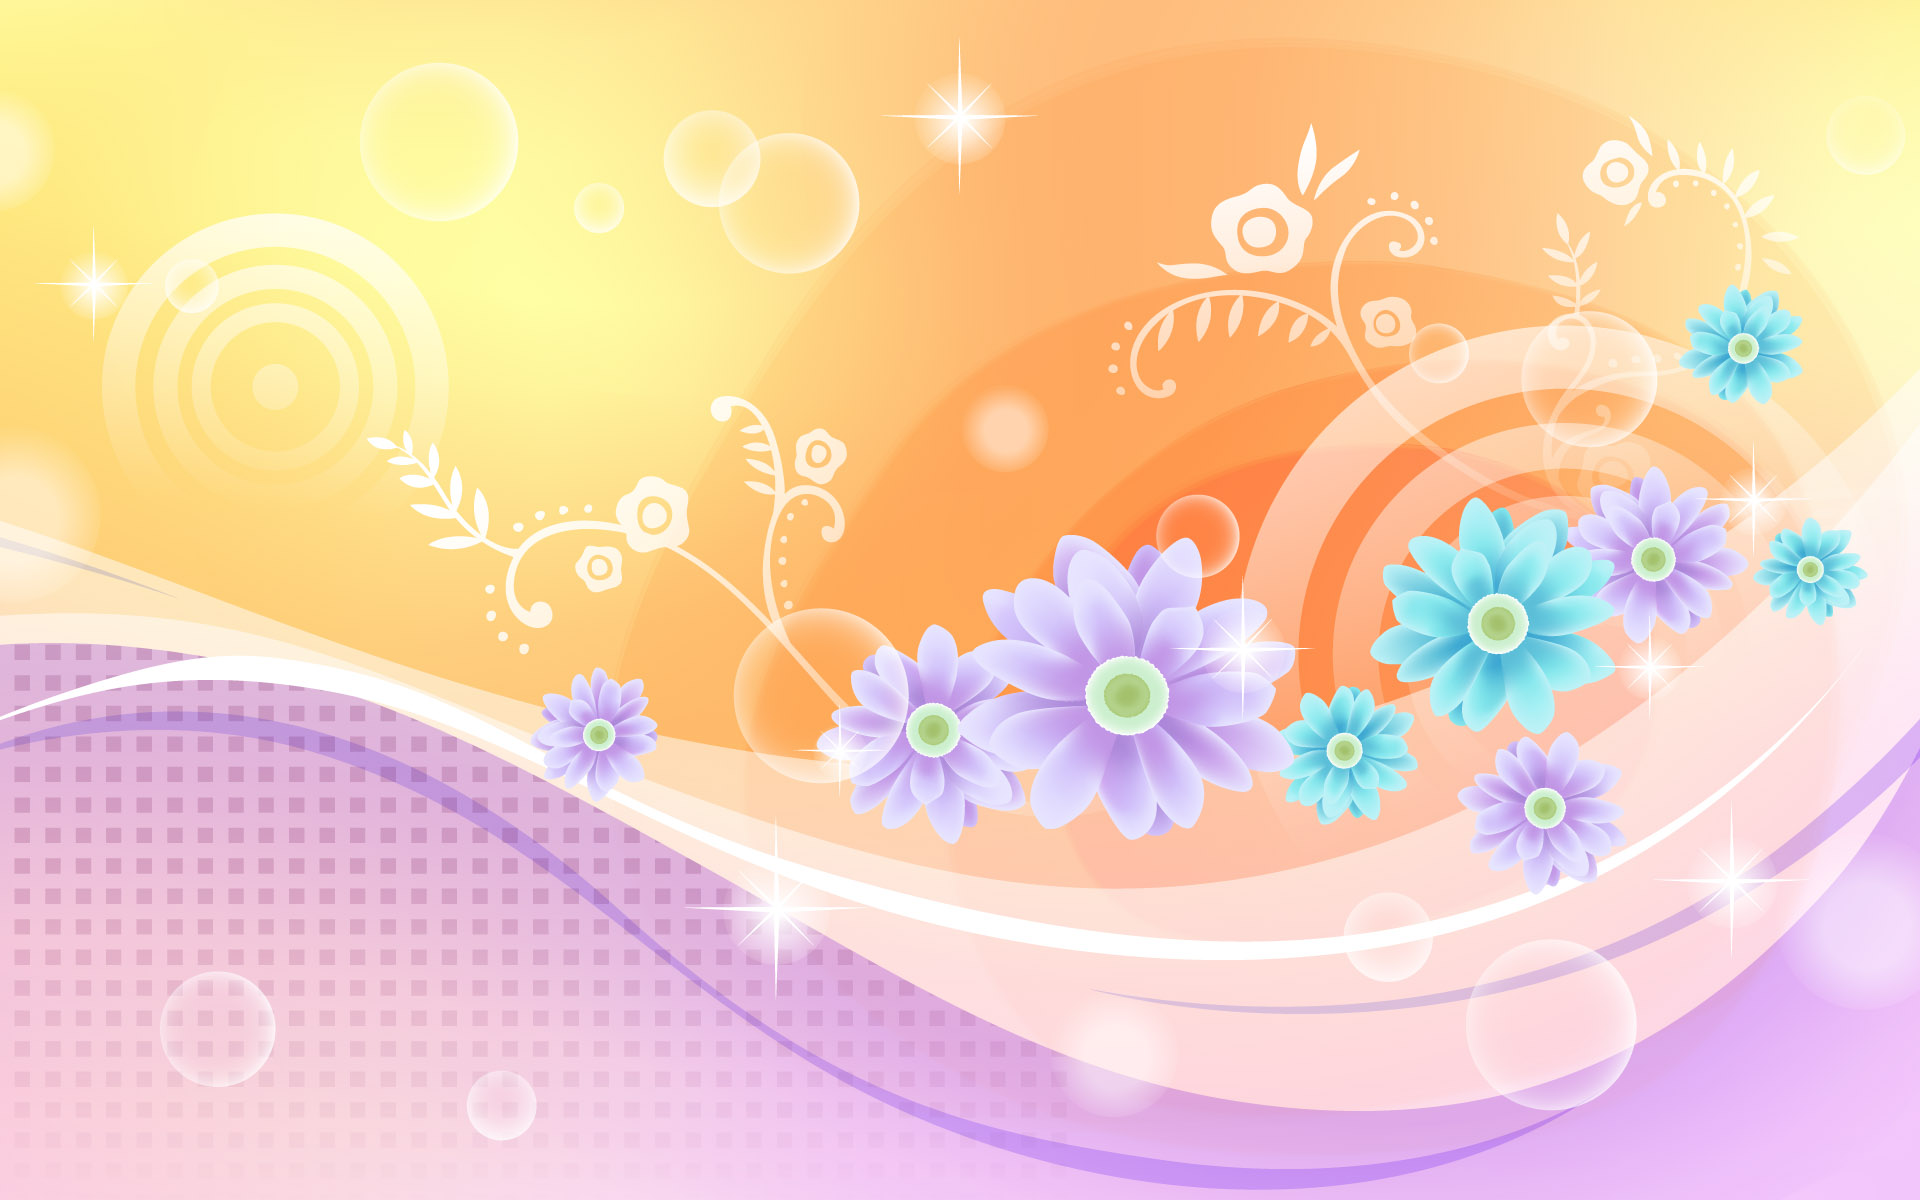 80 Abstract Flowers Design Wallpapers   Photo 77 of 80 phombocom 1920x1200